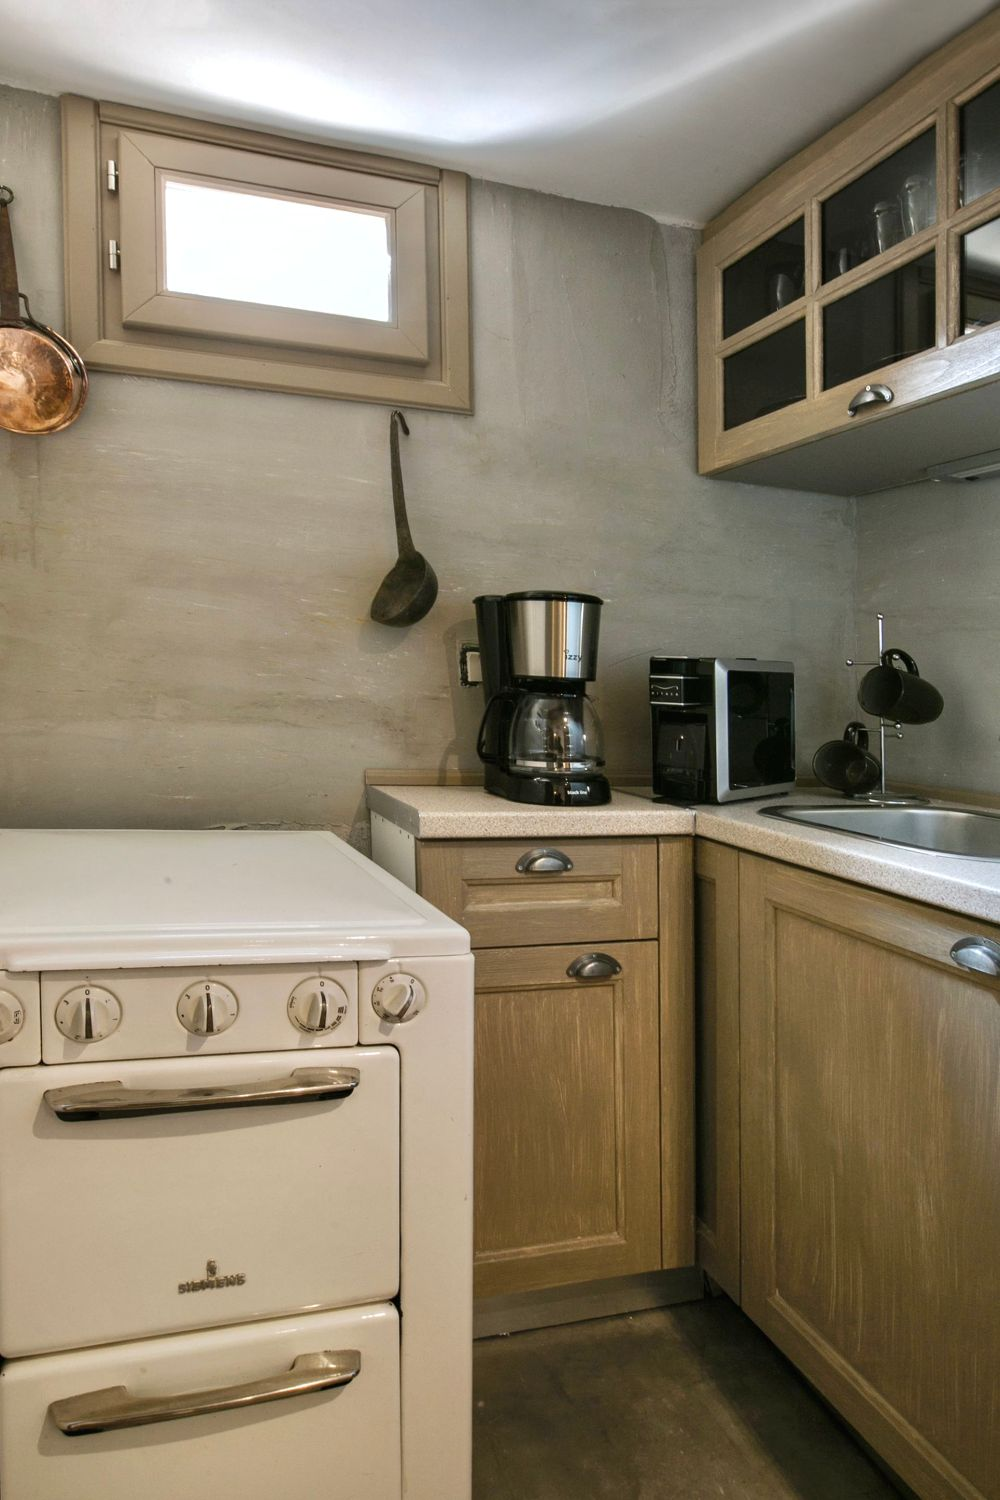 Ottoman Grande: Fully Equipped Kitchen